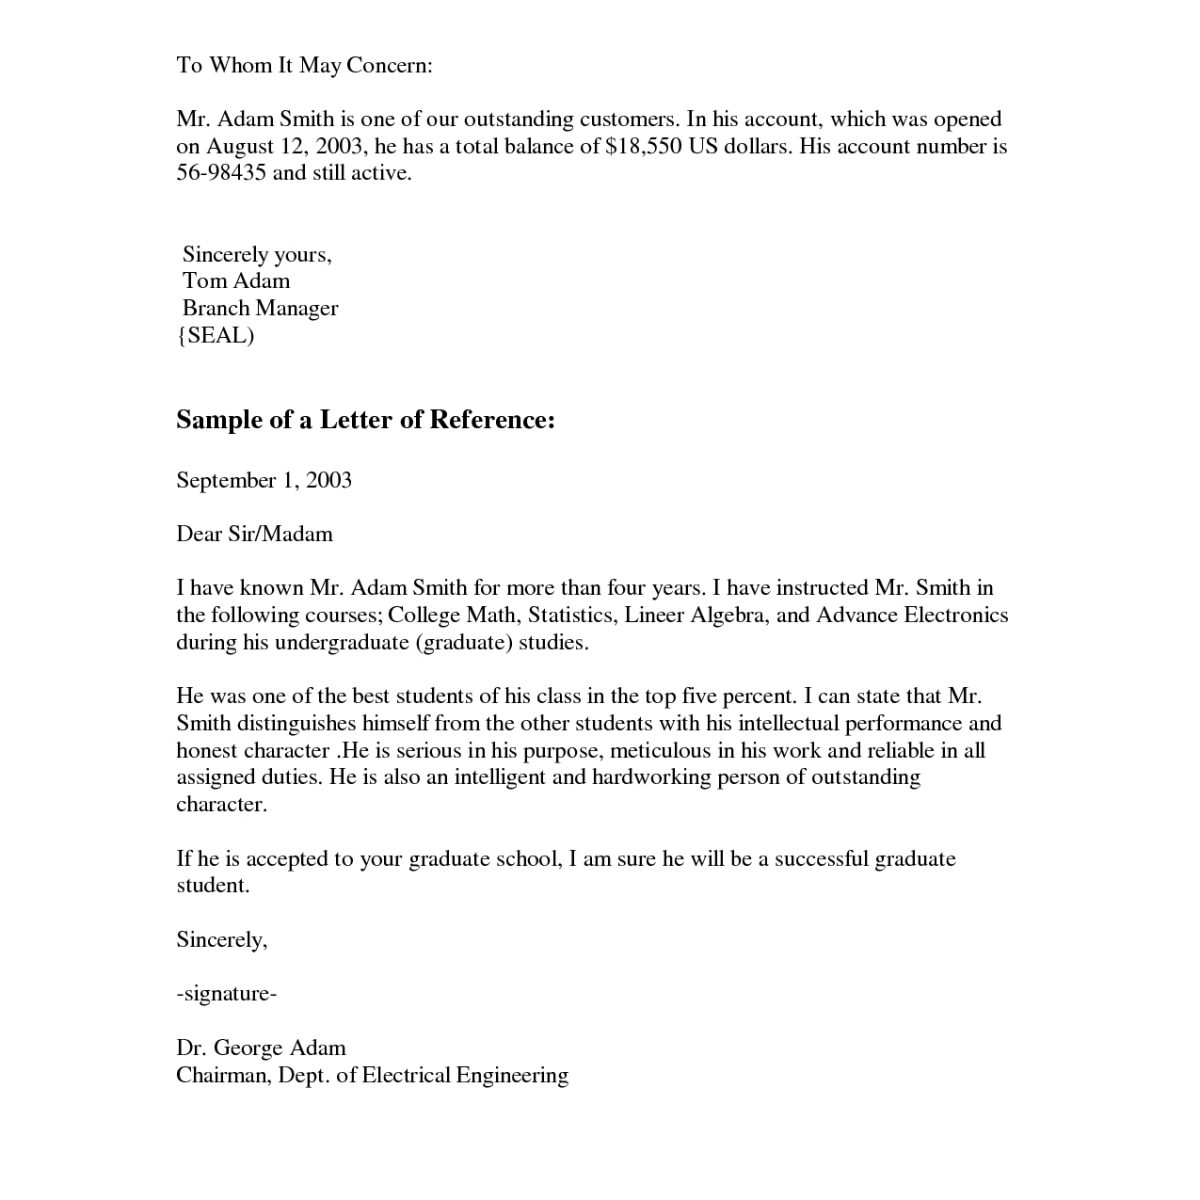 Business Letter Format To Whom It May Concern | World Of Example throughout Business Letter Format To Whom It May Concern